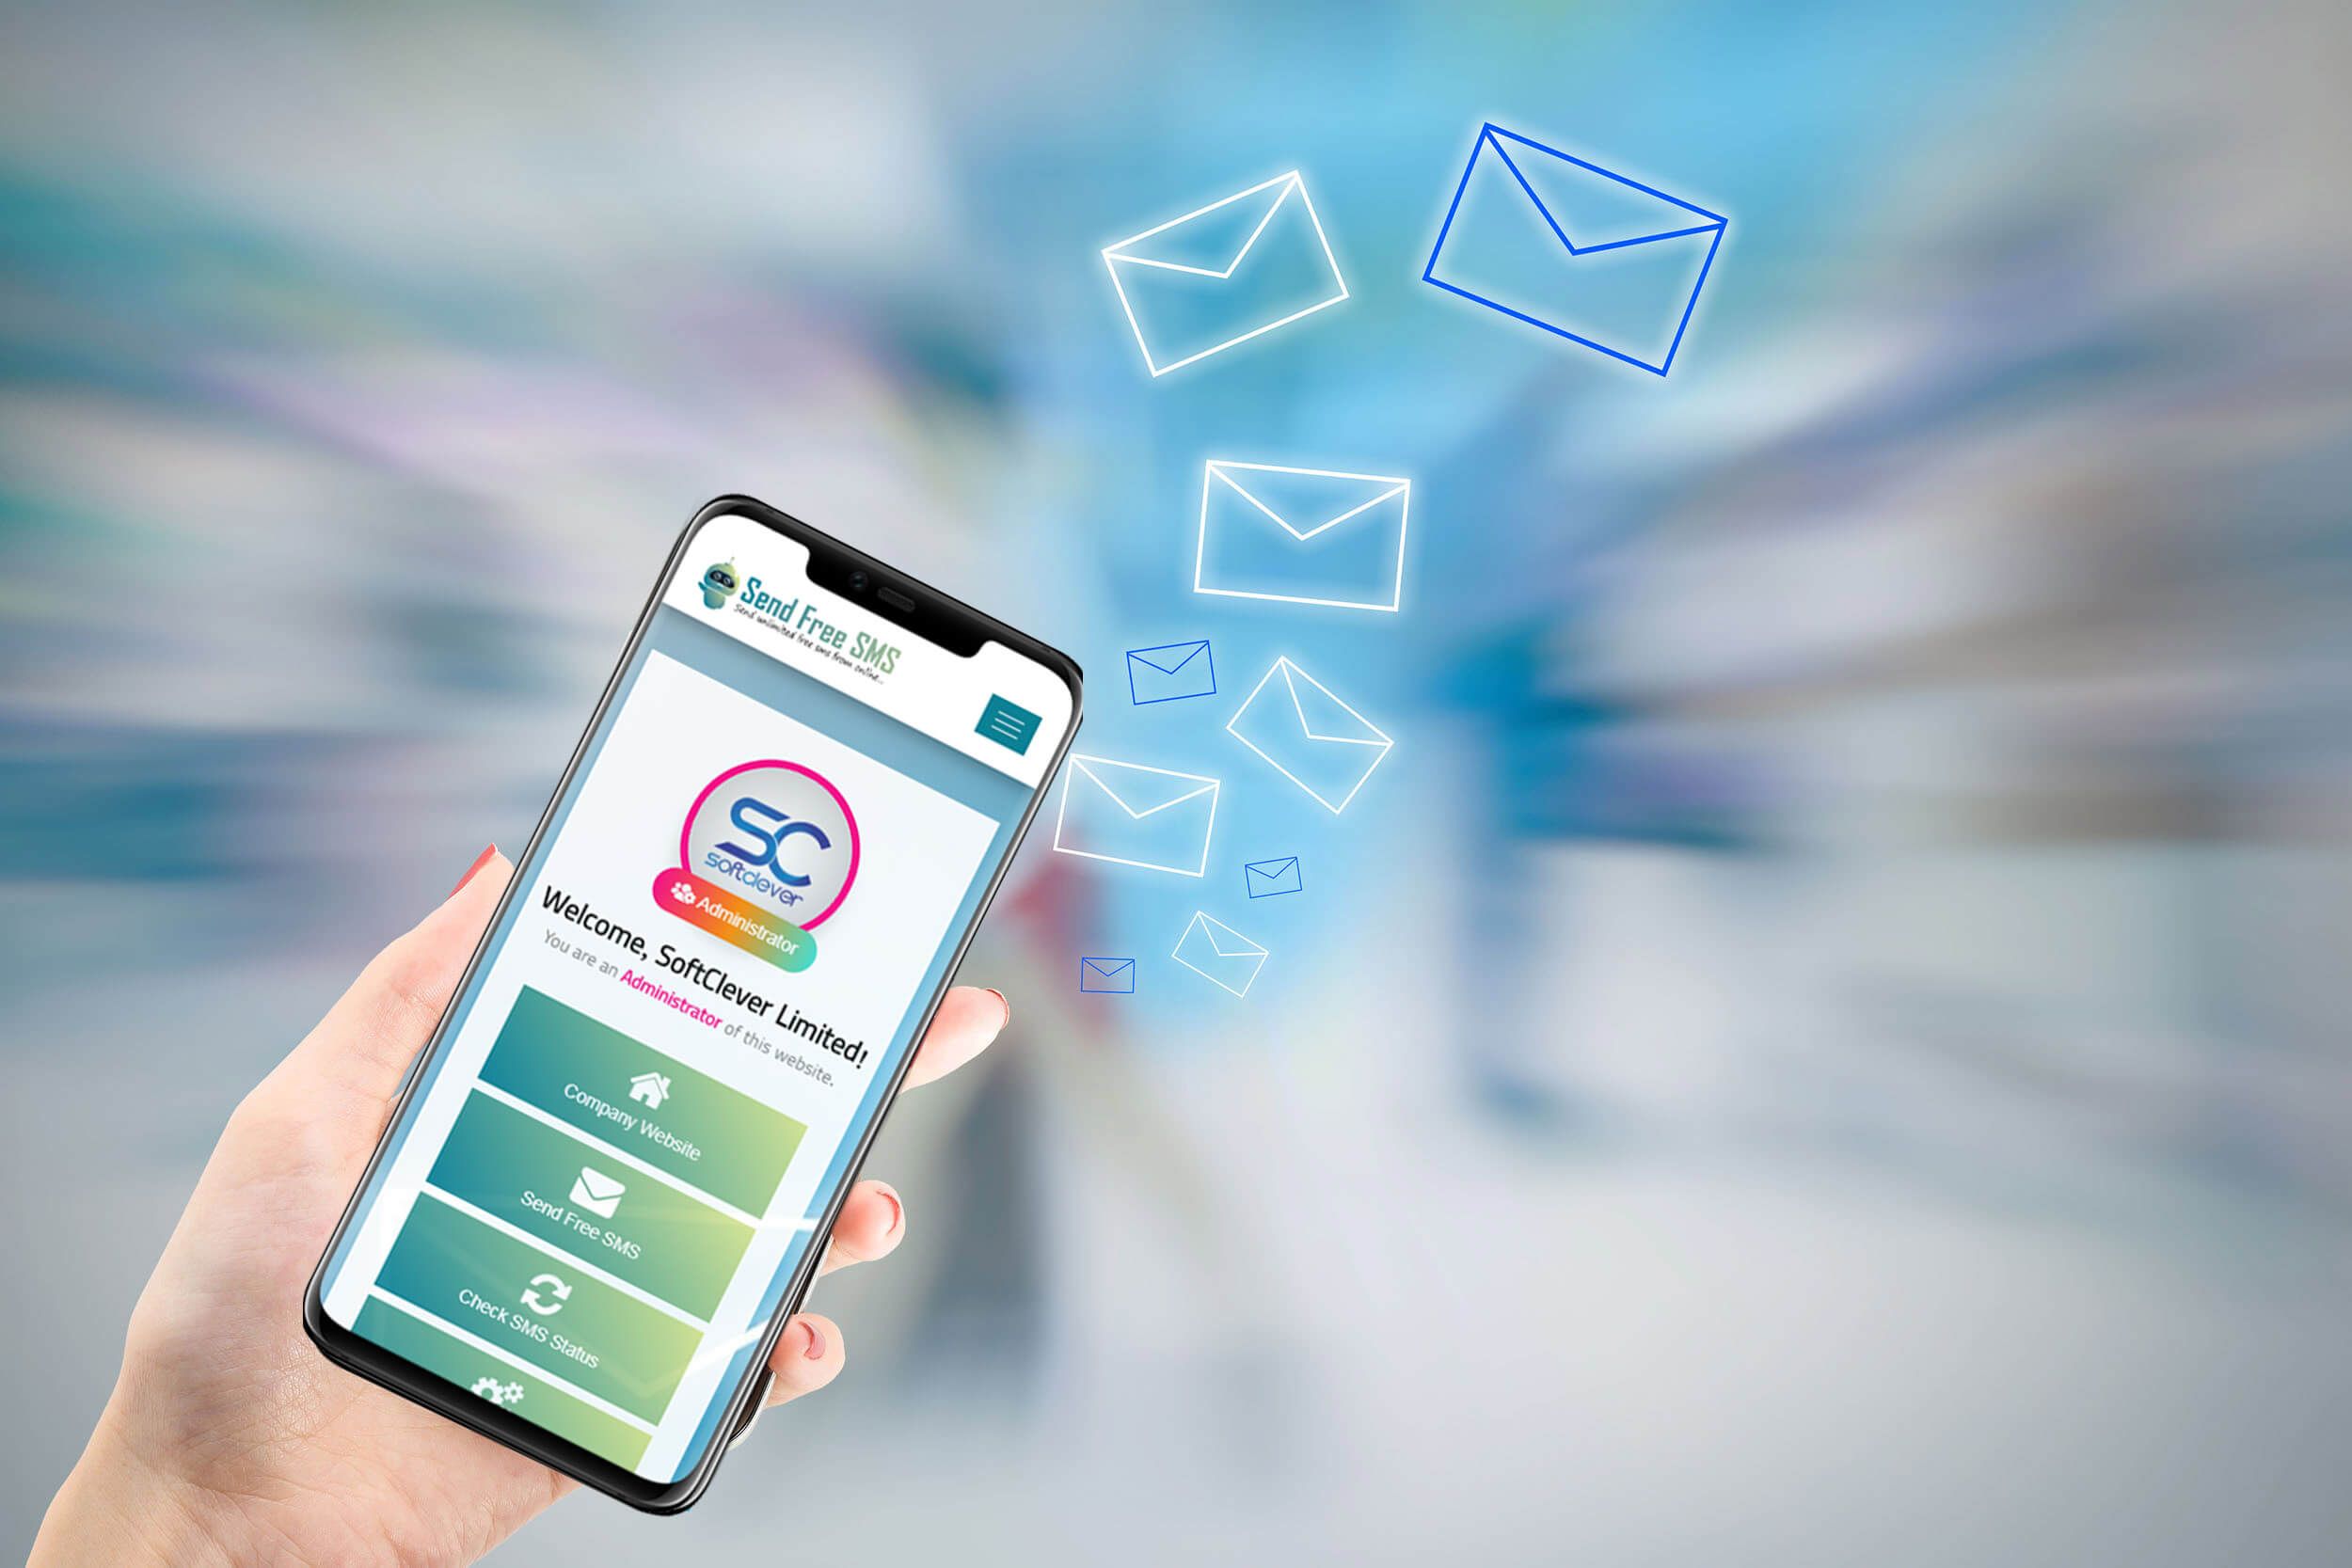 Download Free SMS Sender Android Apps